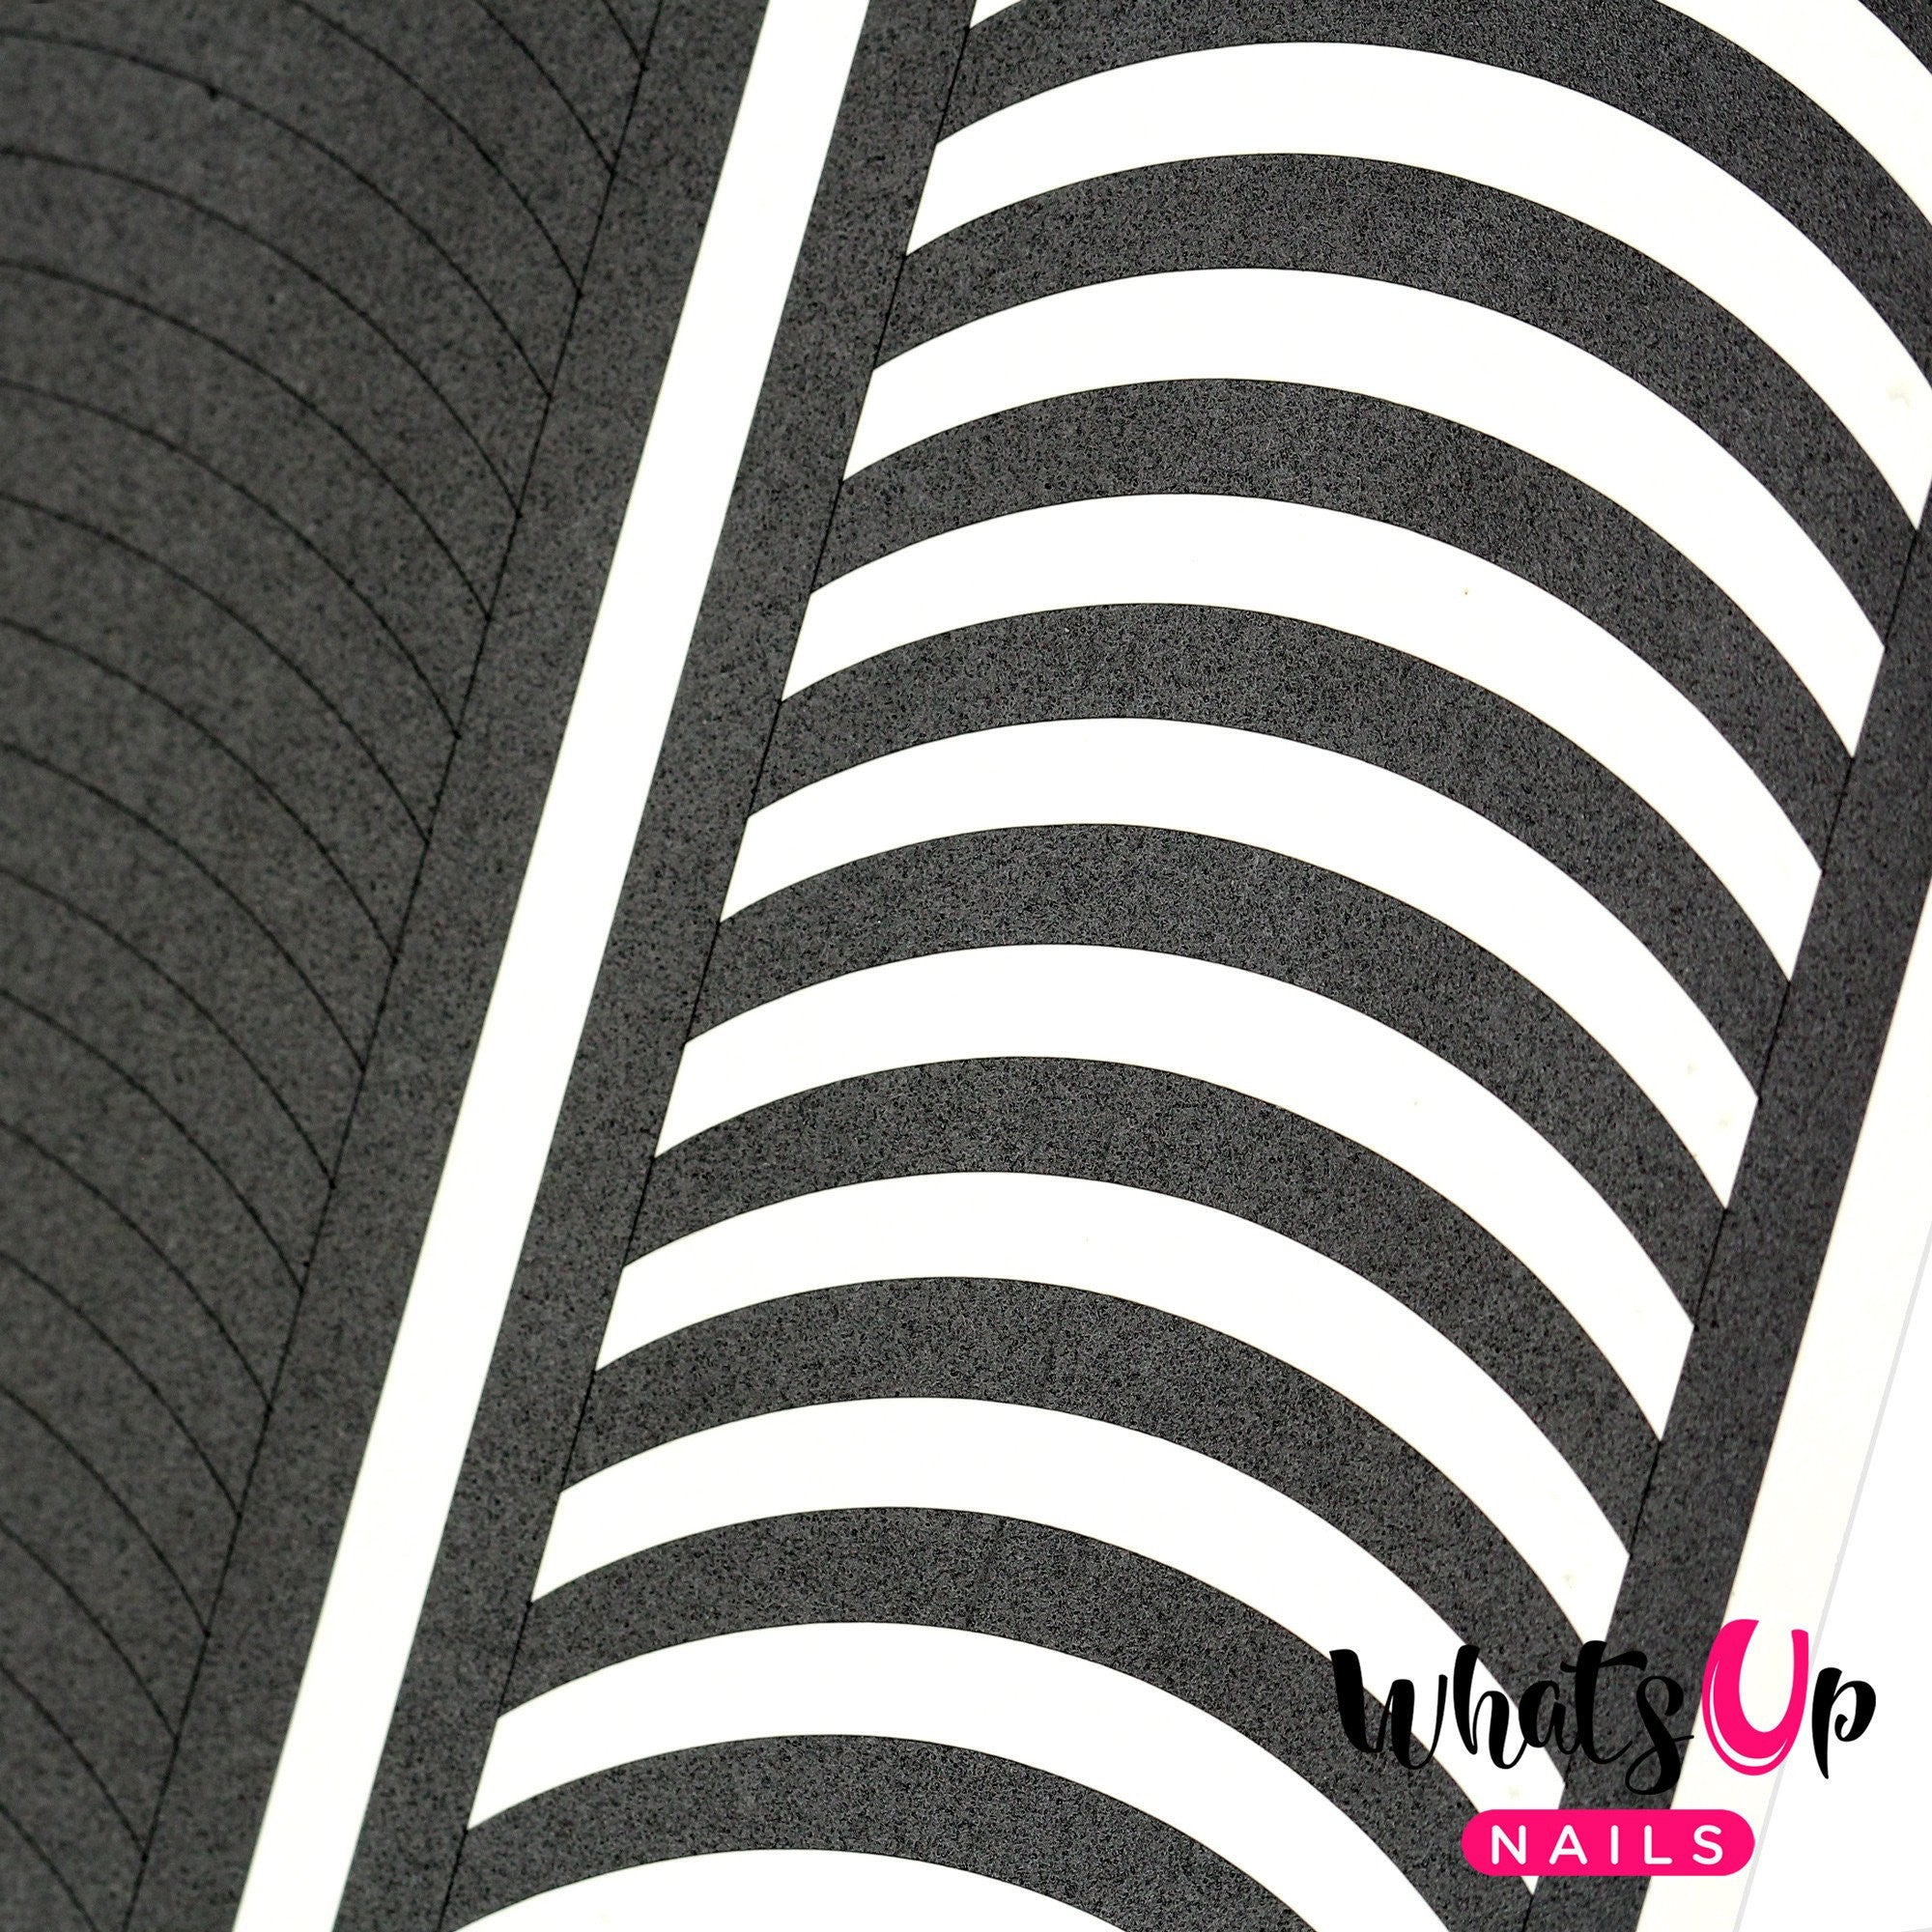 Daily Charme Nail Art Supply Nail Vinyls Sticker Stencil Whats Up Nails / French Tip Tape